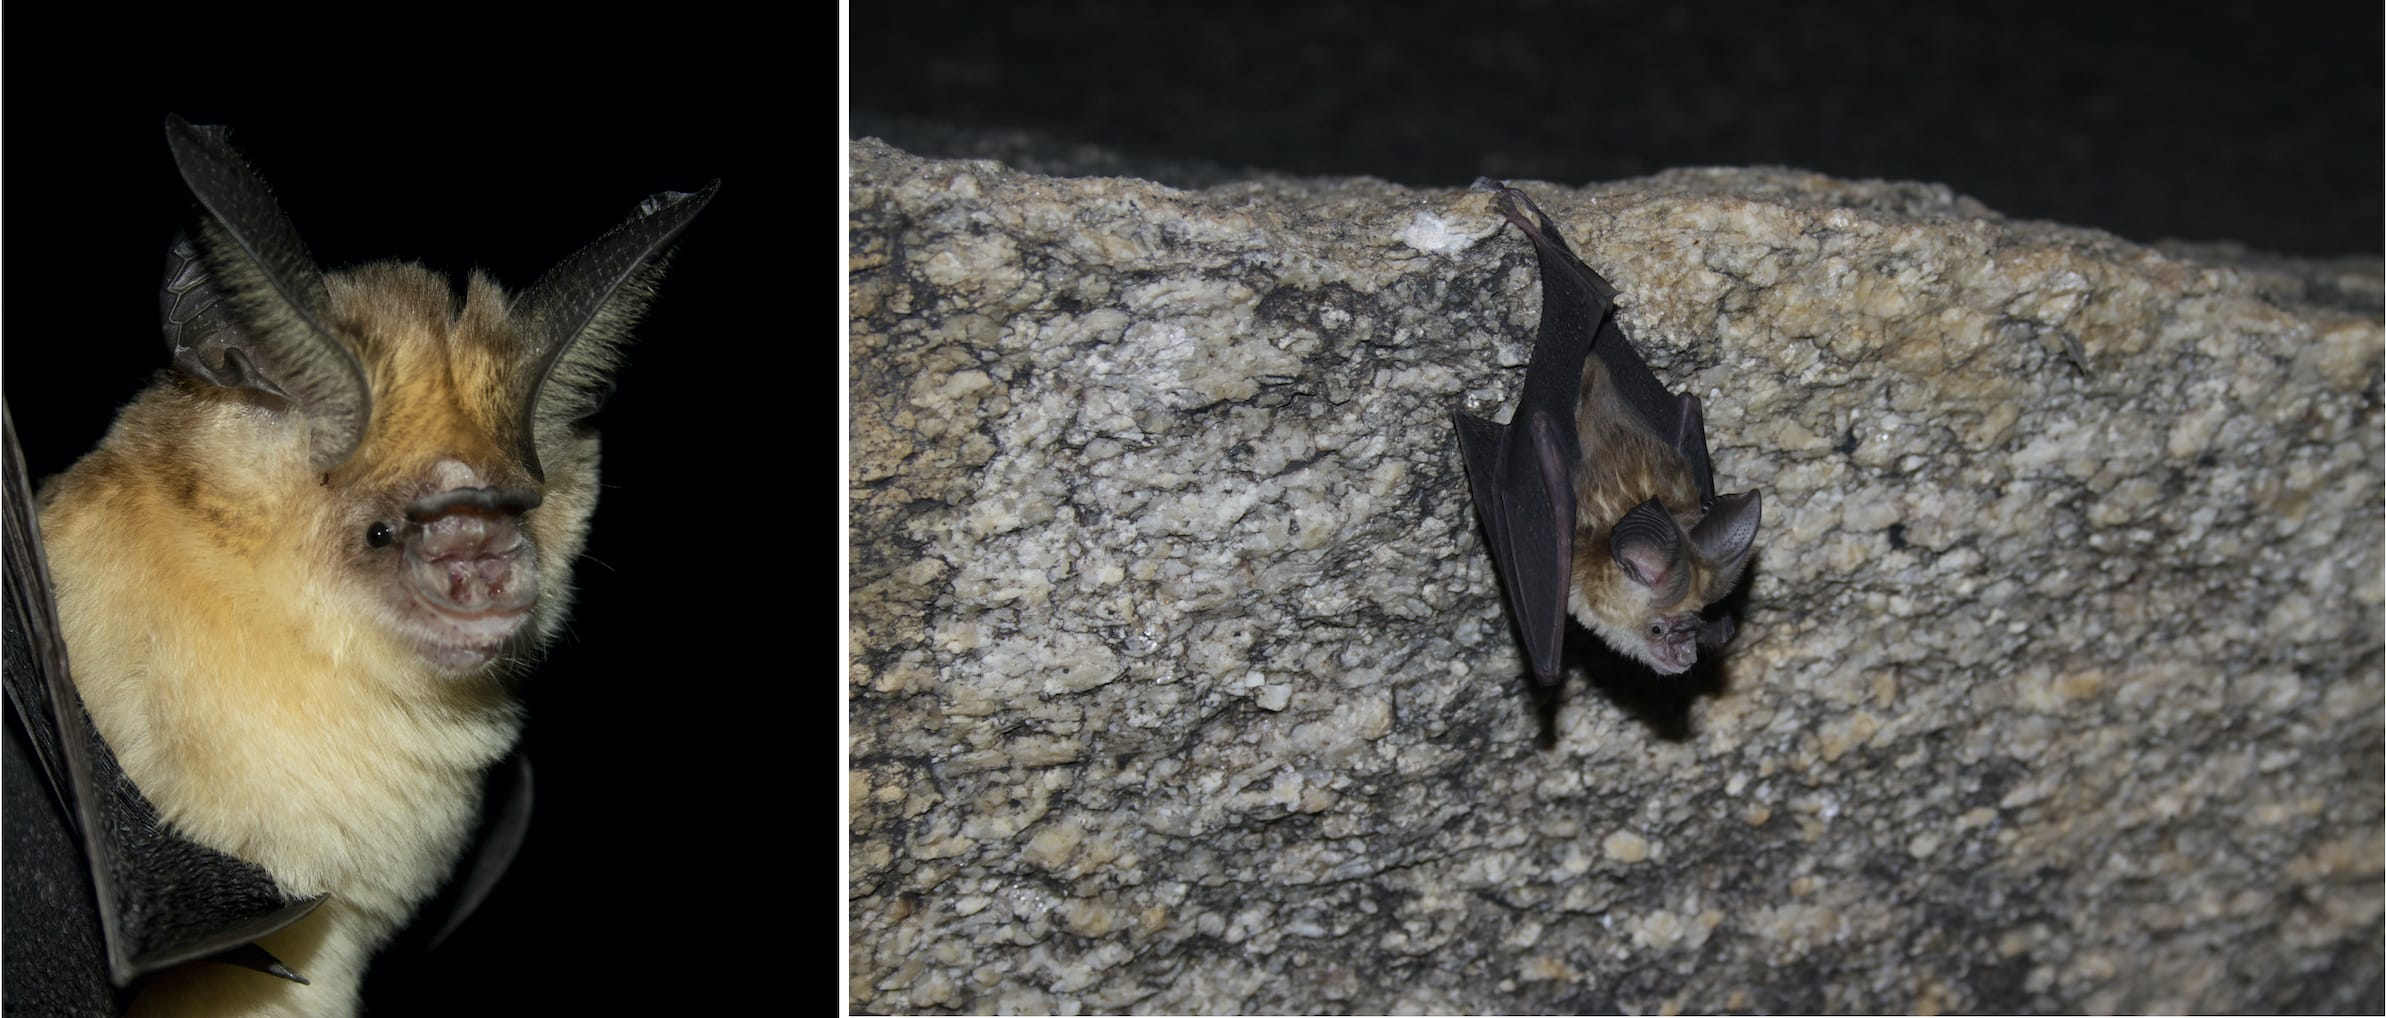 (Left) The Kolar leaf-nosed bat is a small species of bat weighing about 4 grams. It is recognised also by its brownish-black and golden fur.  Photo: Rajesh Puttaswamaiah